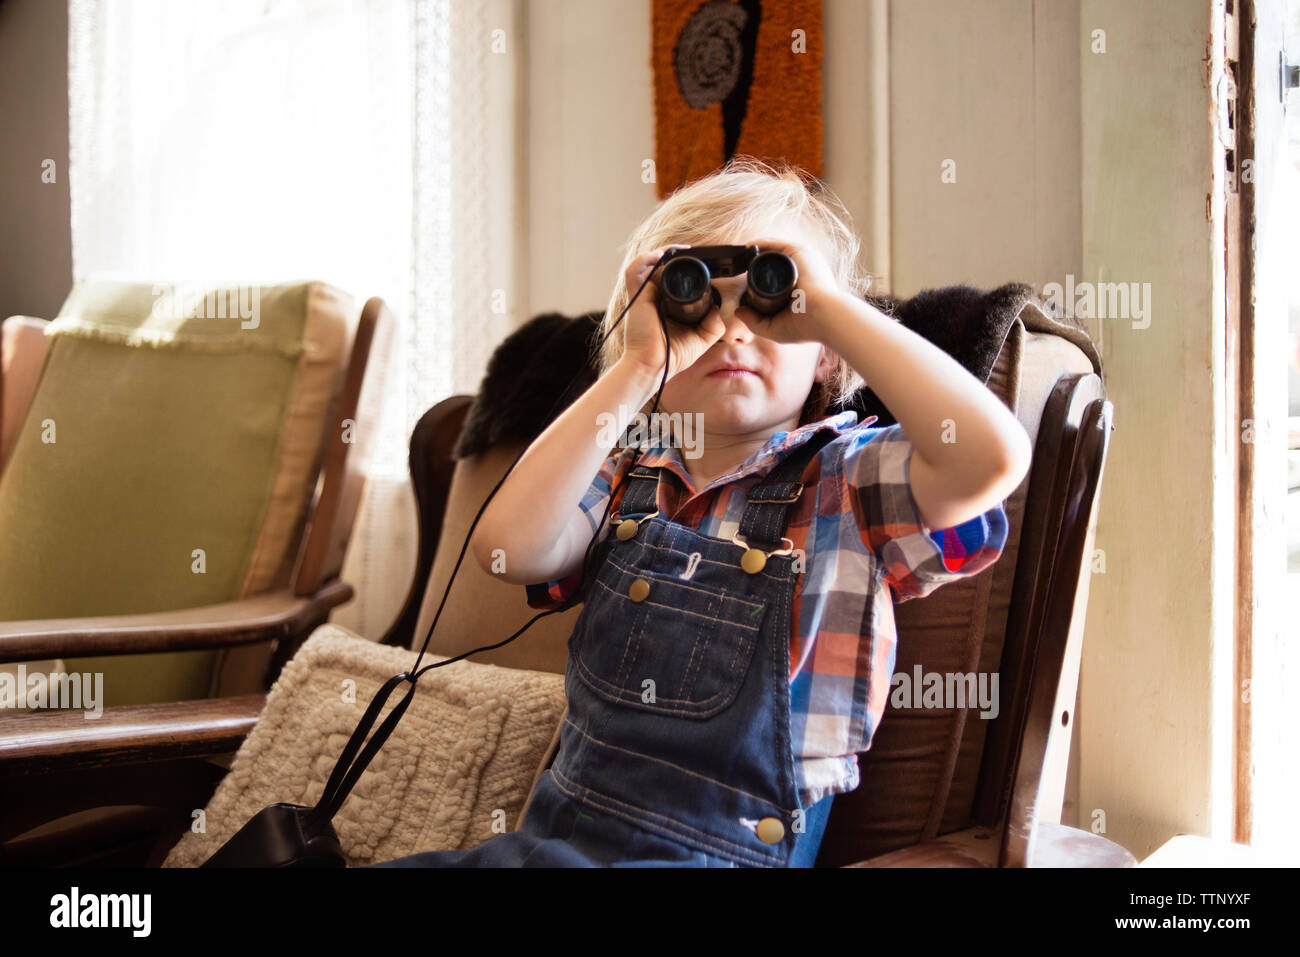 Boy looking through binoculars while sitting on chair at home - Stock Image